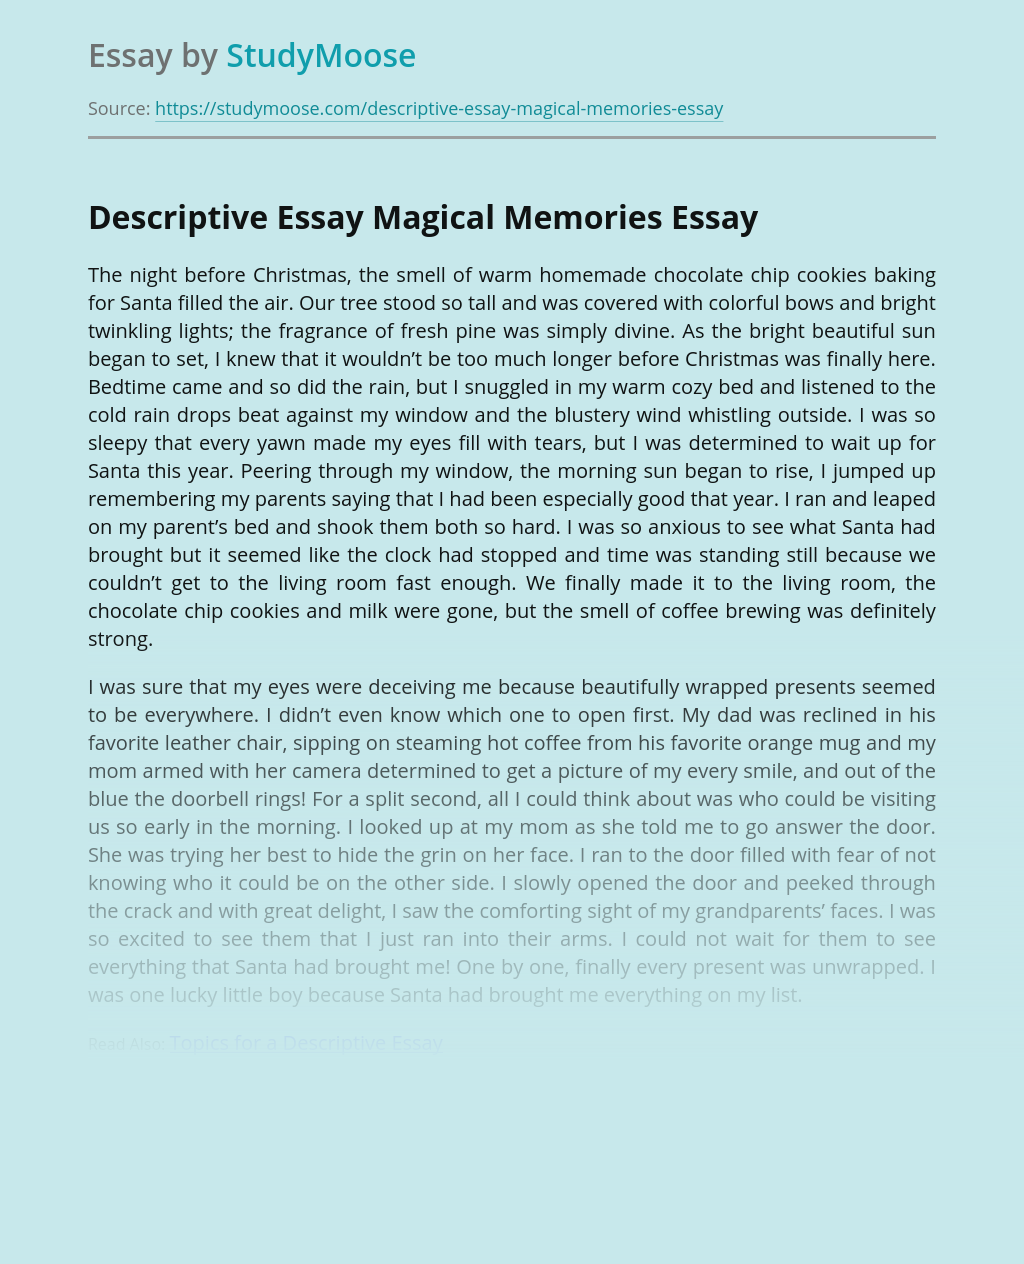 Descriptive Essay Magical Memories